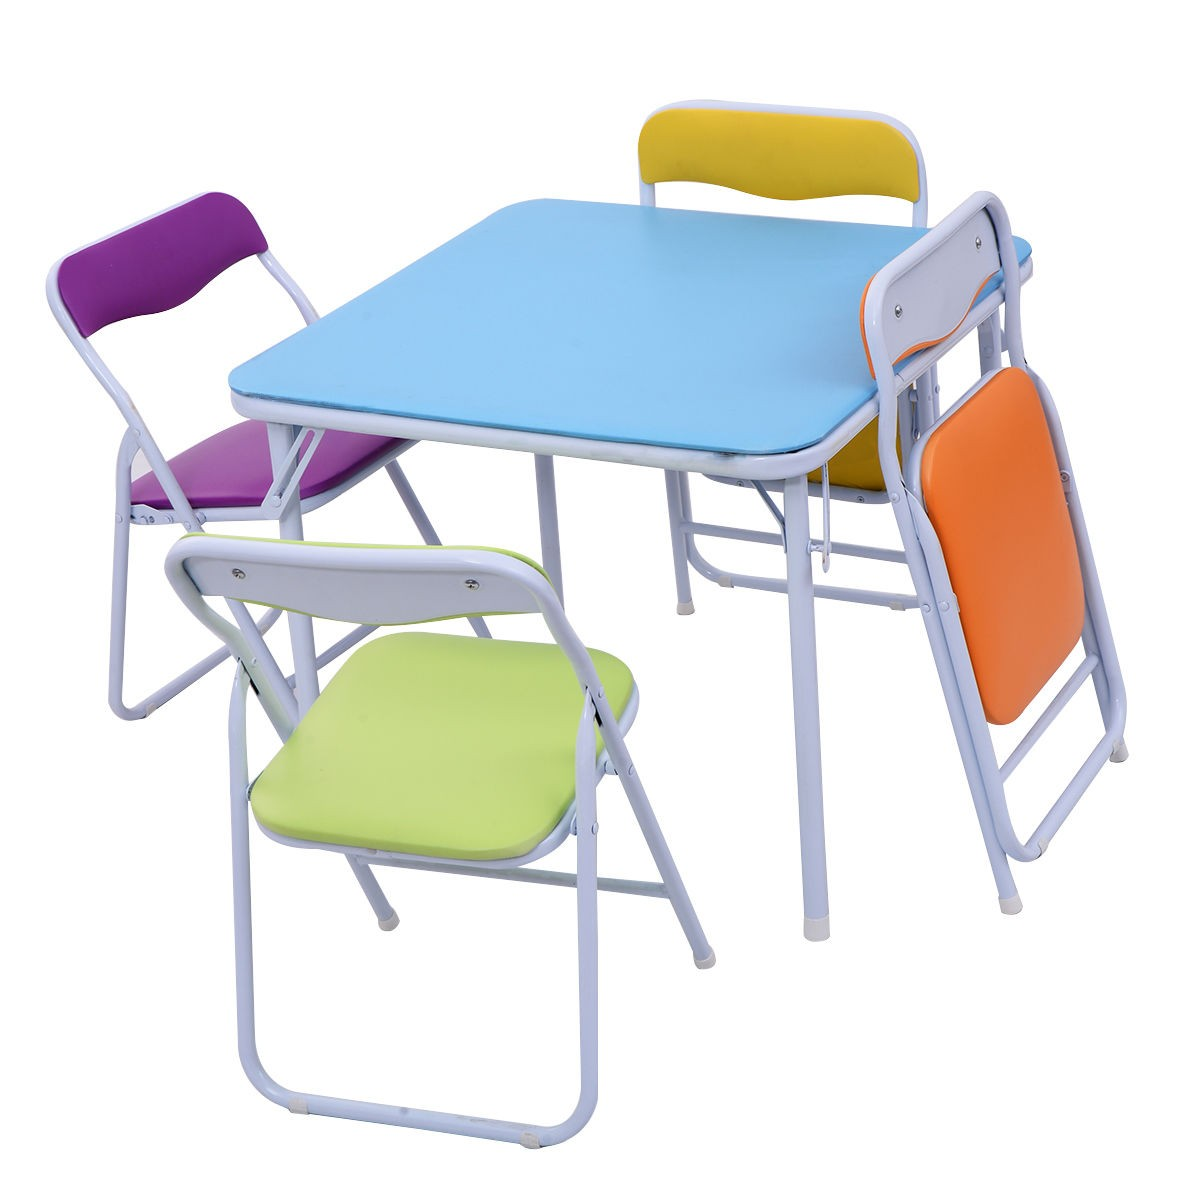 5 Piece Set Folding Table Chair Children Kids Colorful Play Room Furniture Se